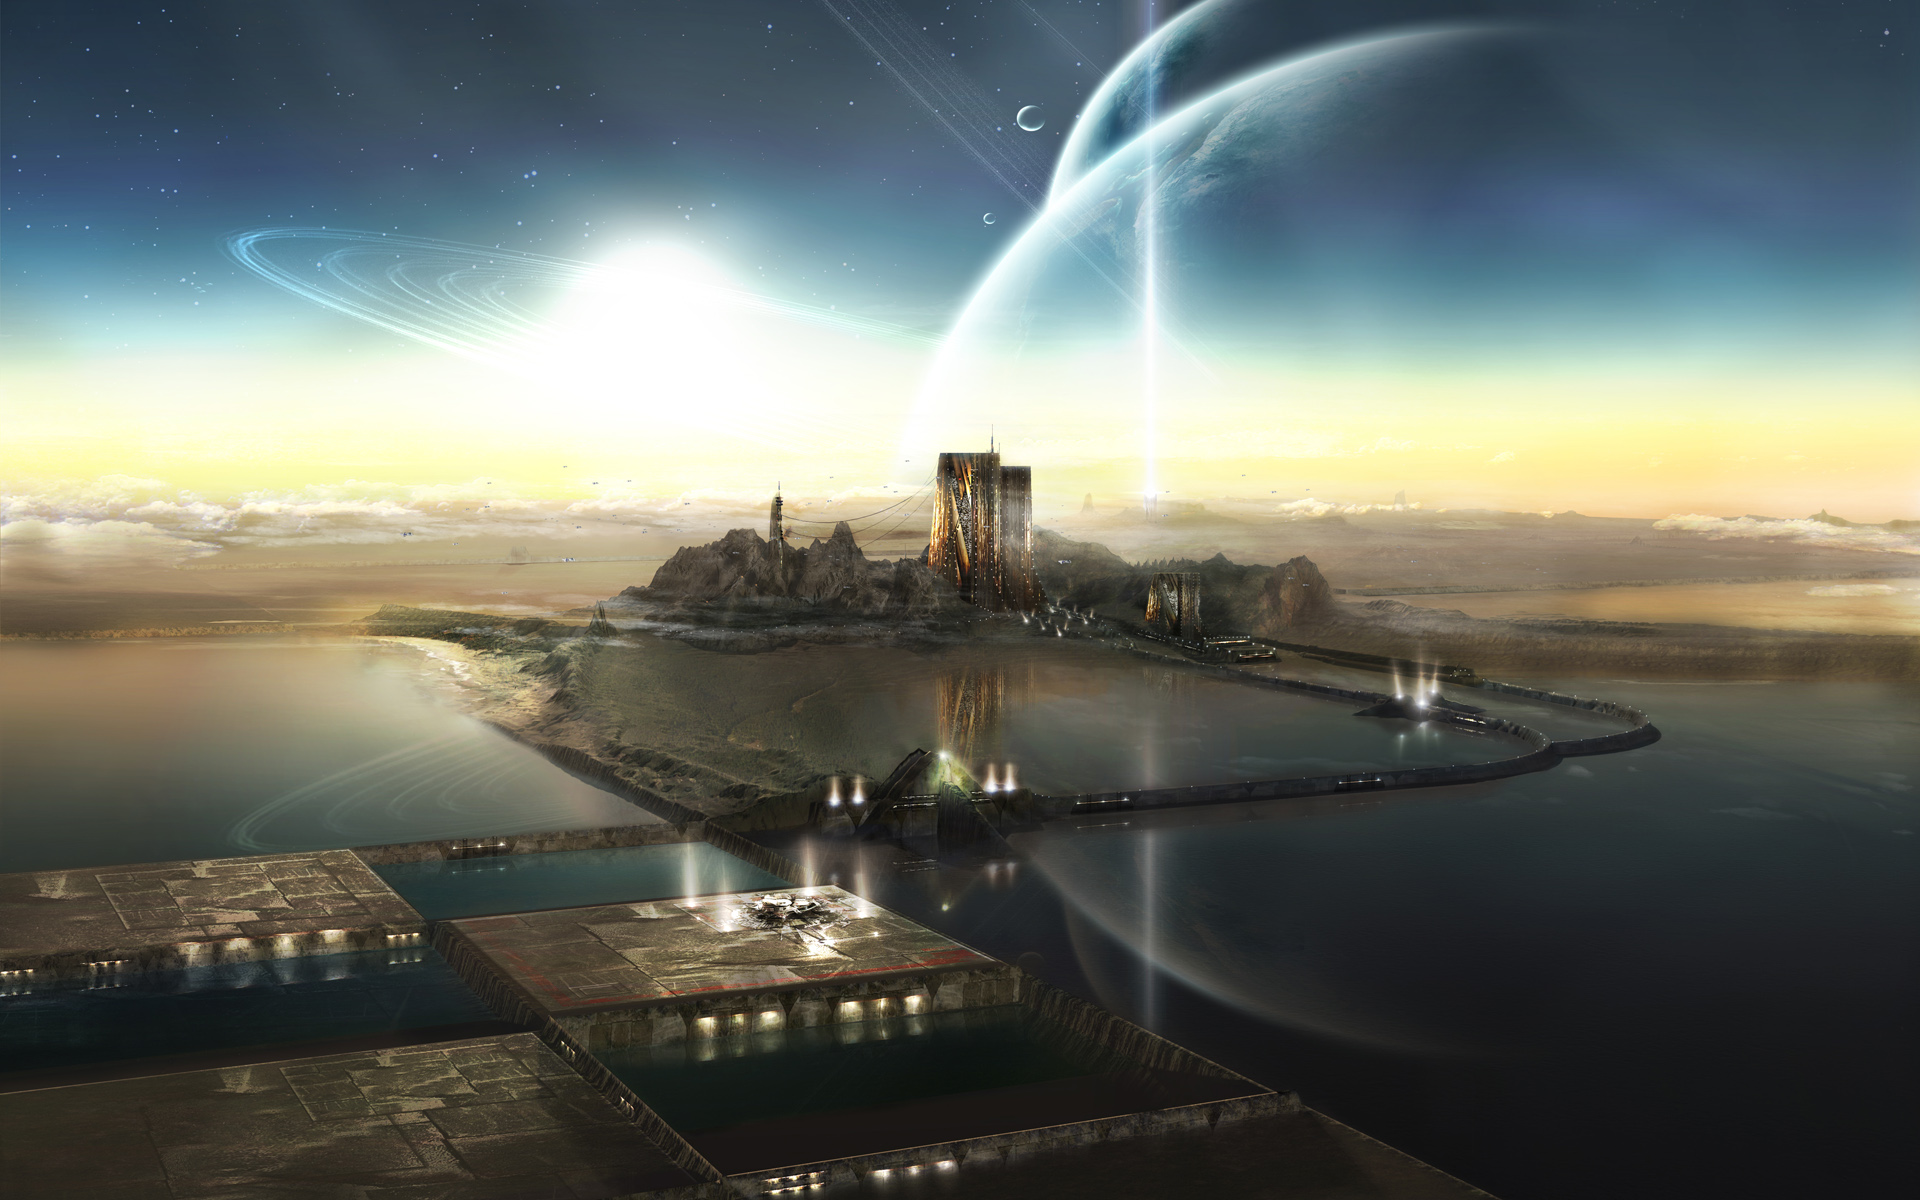 Sci-Fi-Cities-Future-Wallpaper.jpg